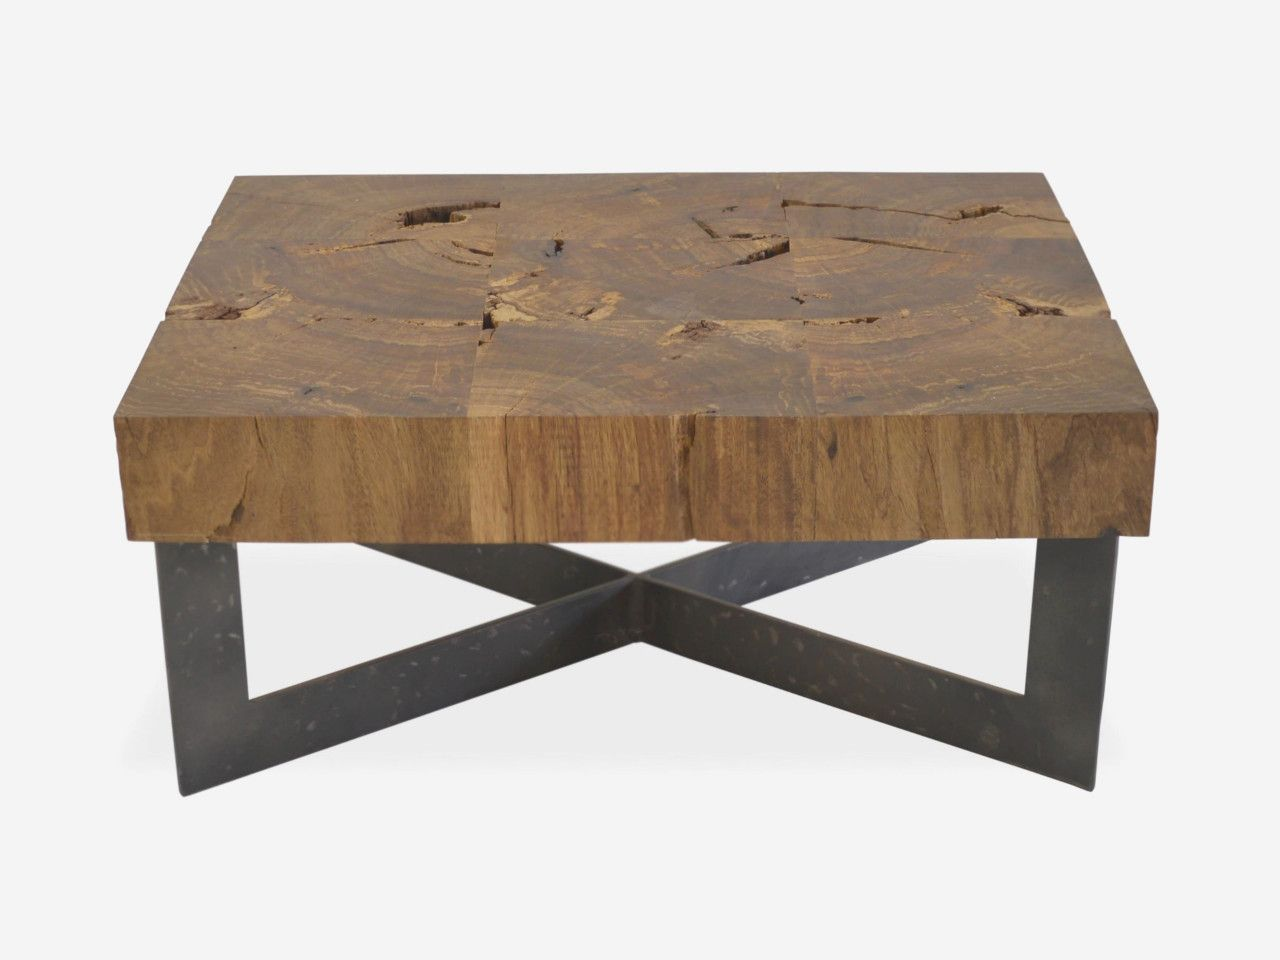 Couchtisch Modern 2017 70 Luxury Solid Wood Square Coffee Table 2017 | Round Wood ...